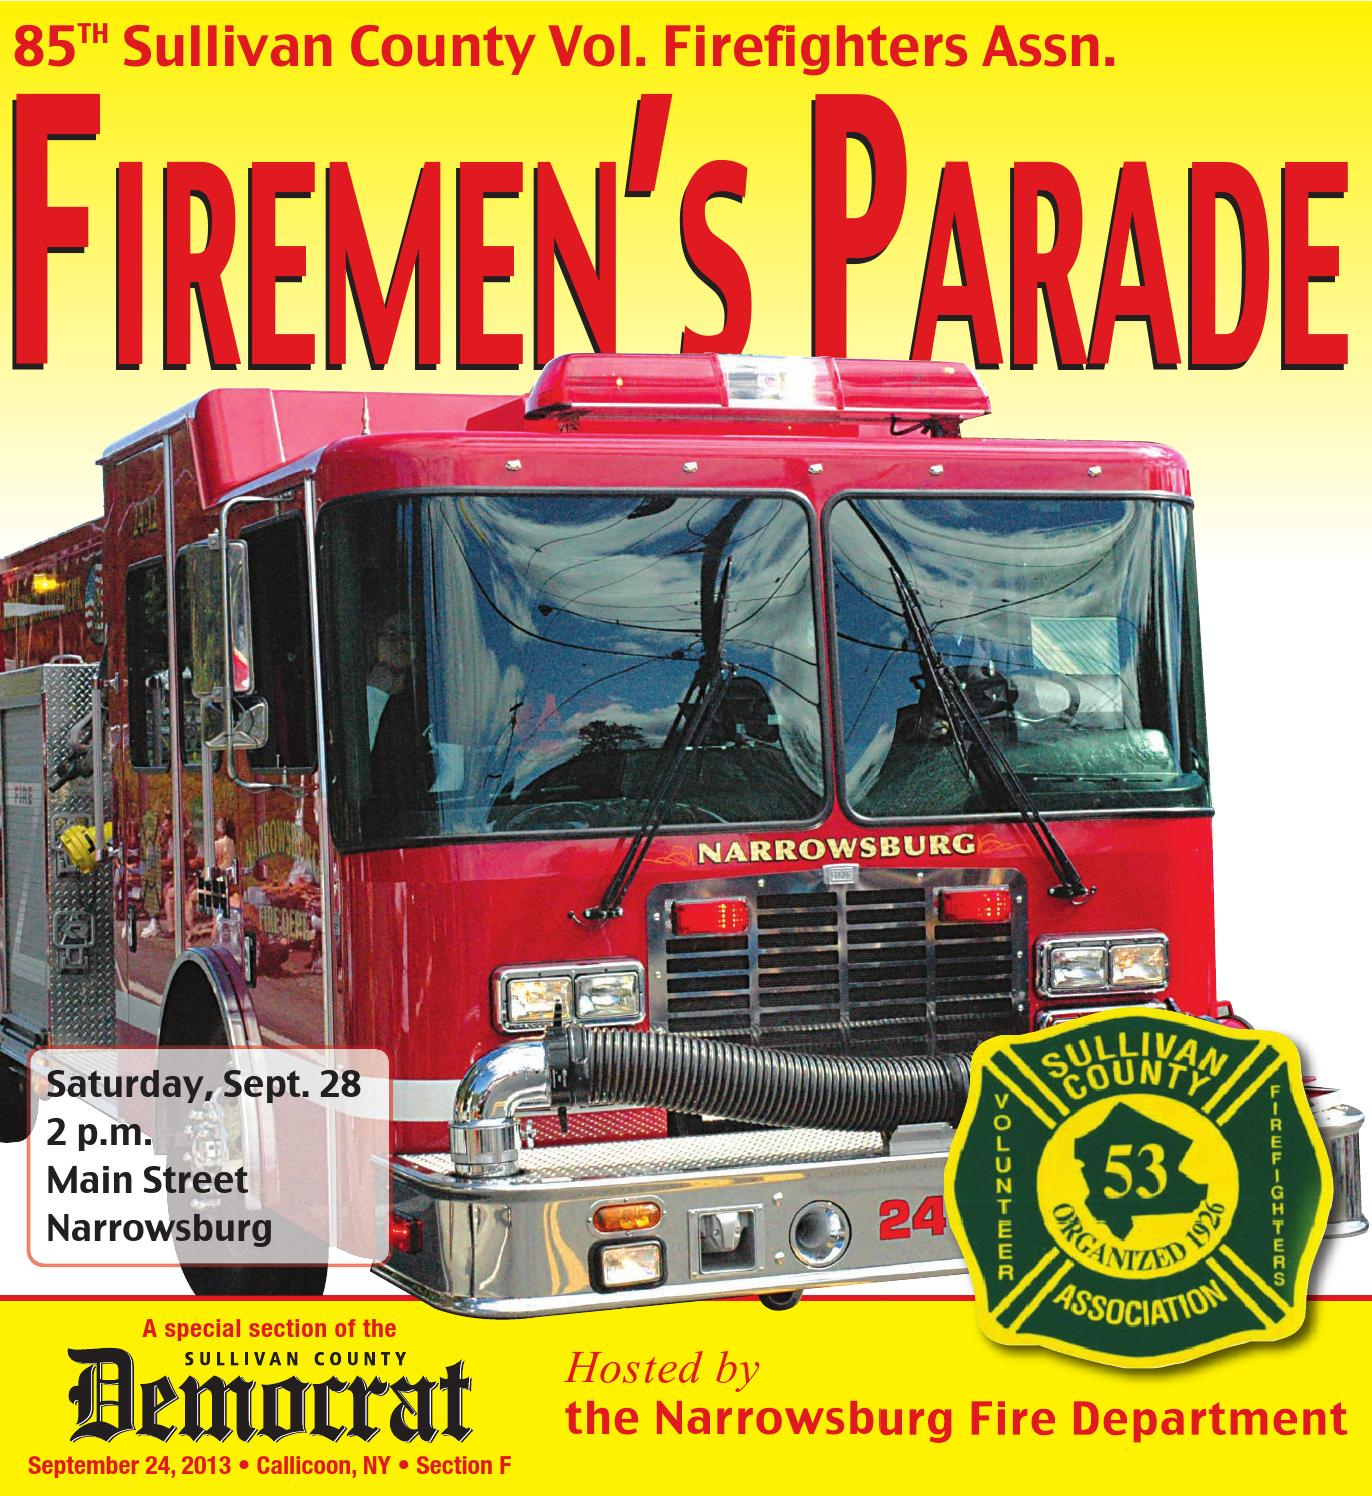 New york sullivan county narrowsburg - Sullivan County Firefighters Parade 2013 By Sullivan County Democrat Catskill Delaware Publications Issuu